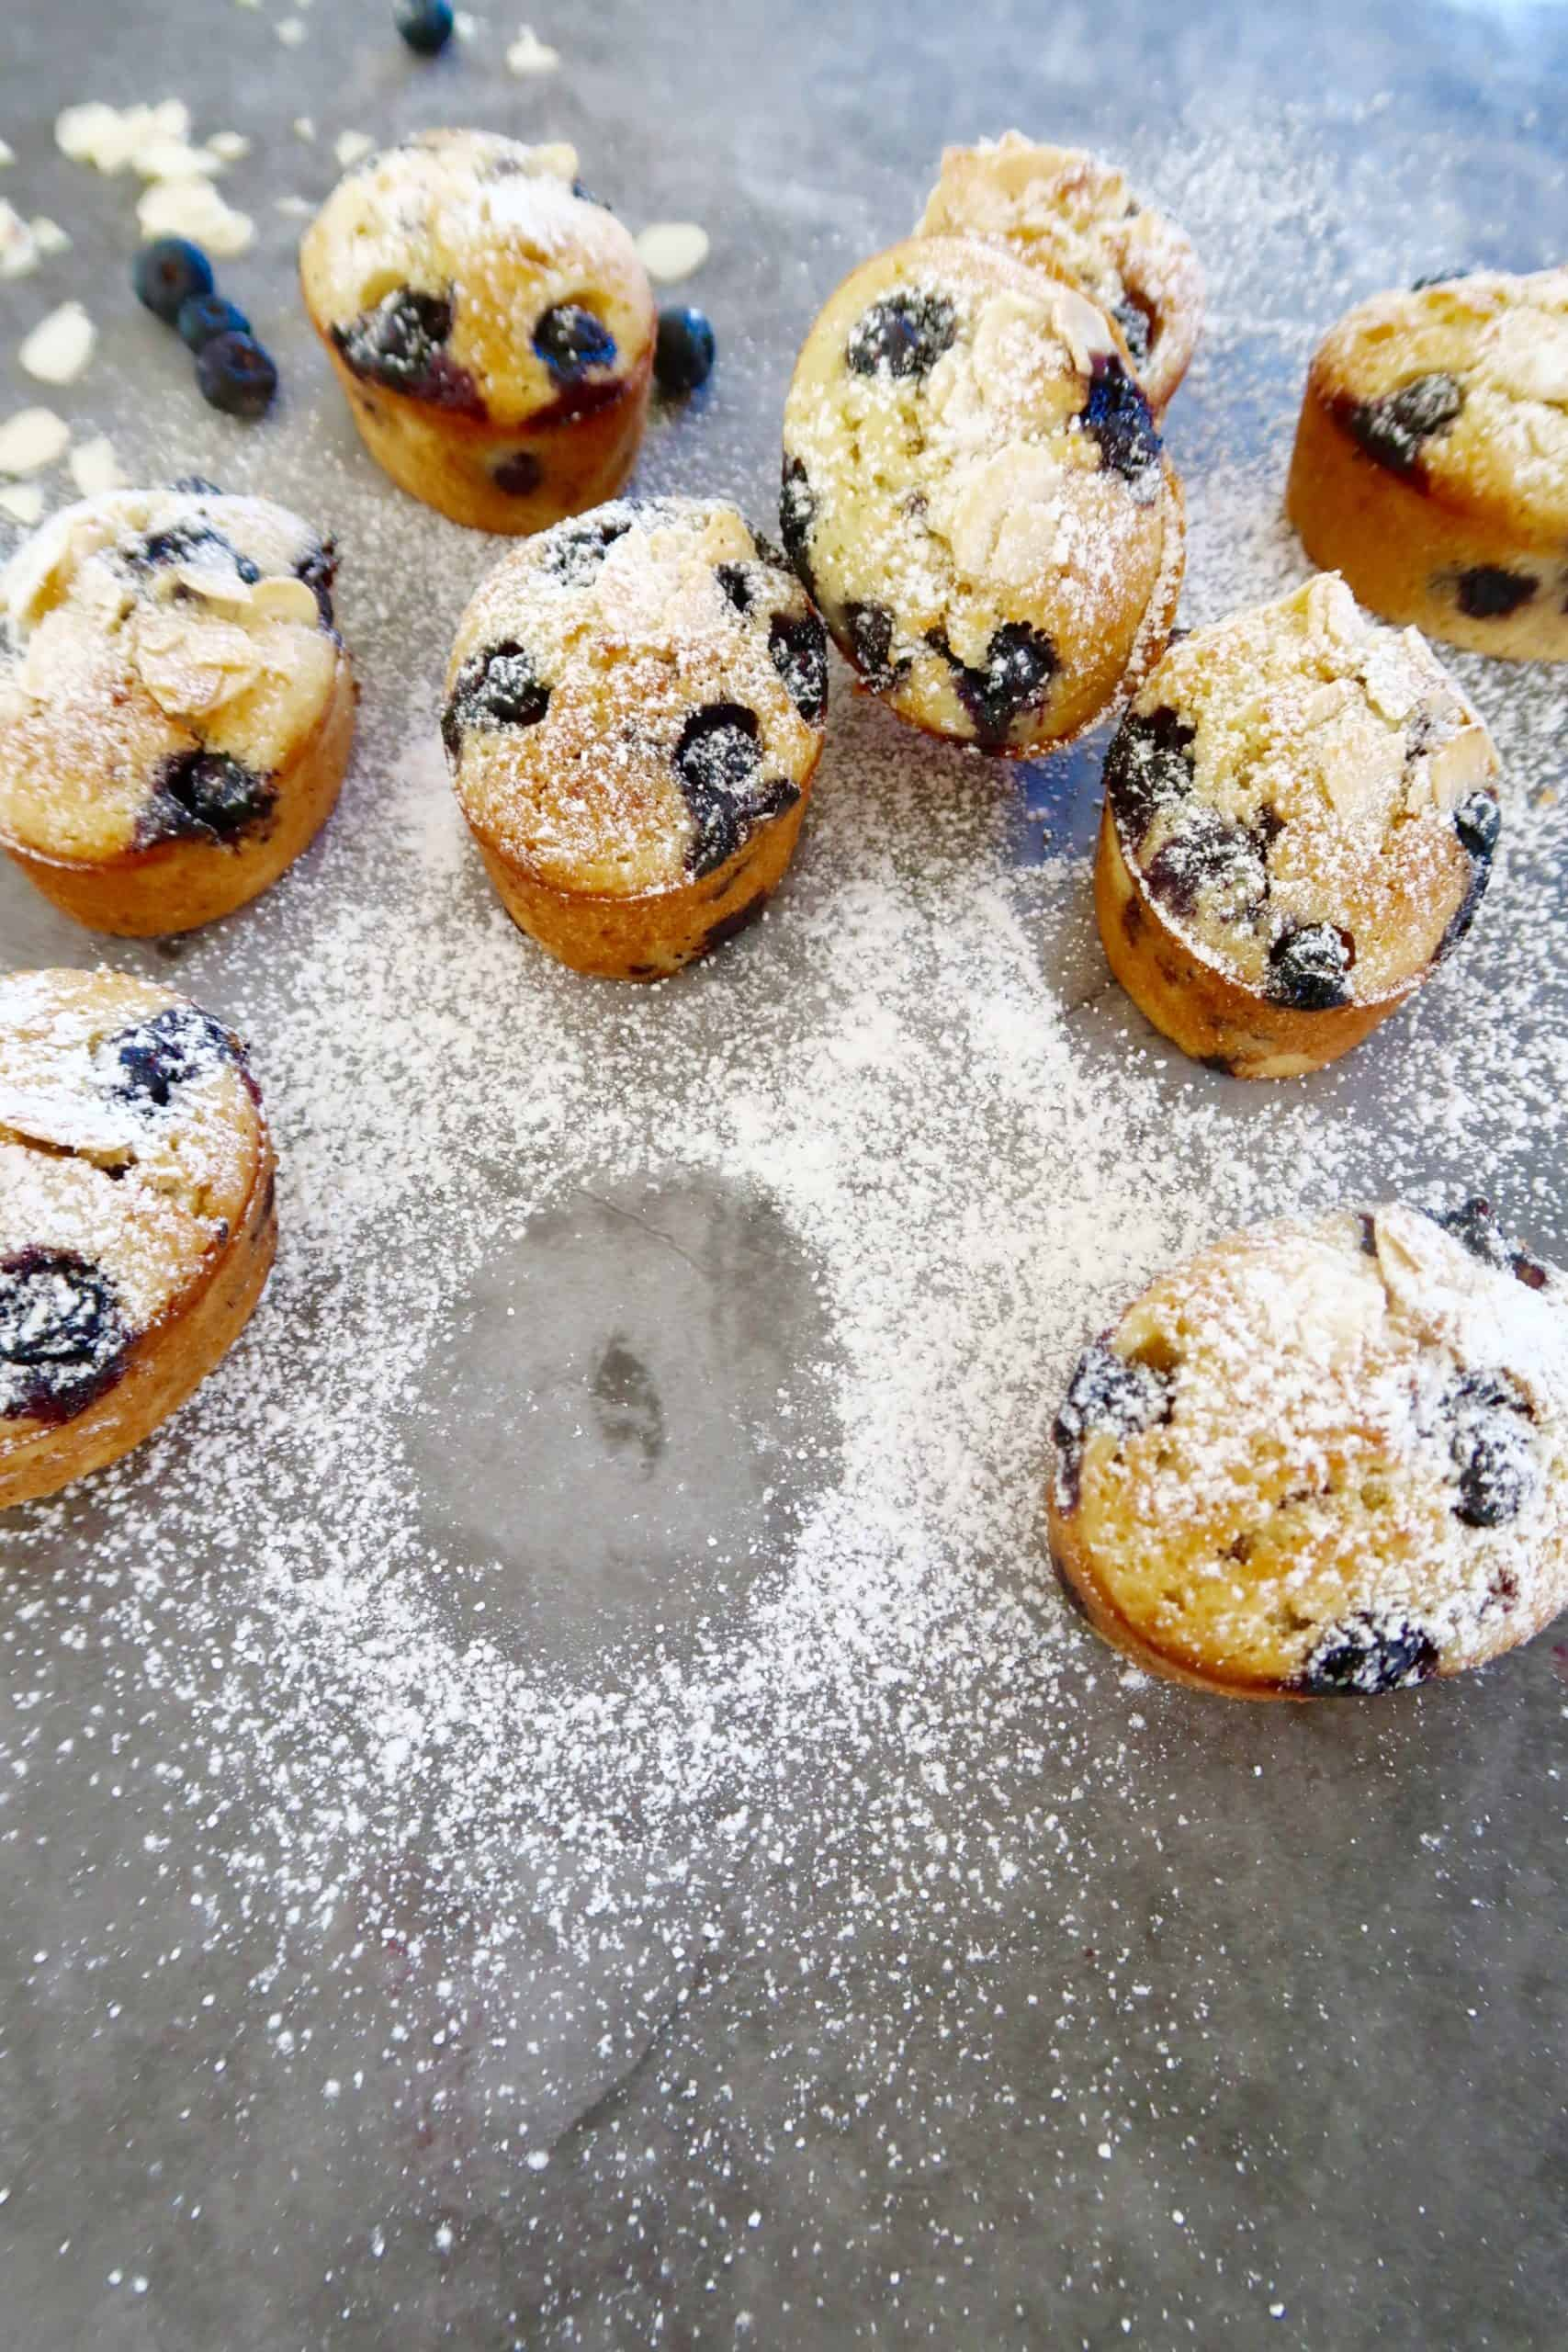 blueberry friands with orange zest baked on a bench with sifted icing sugar